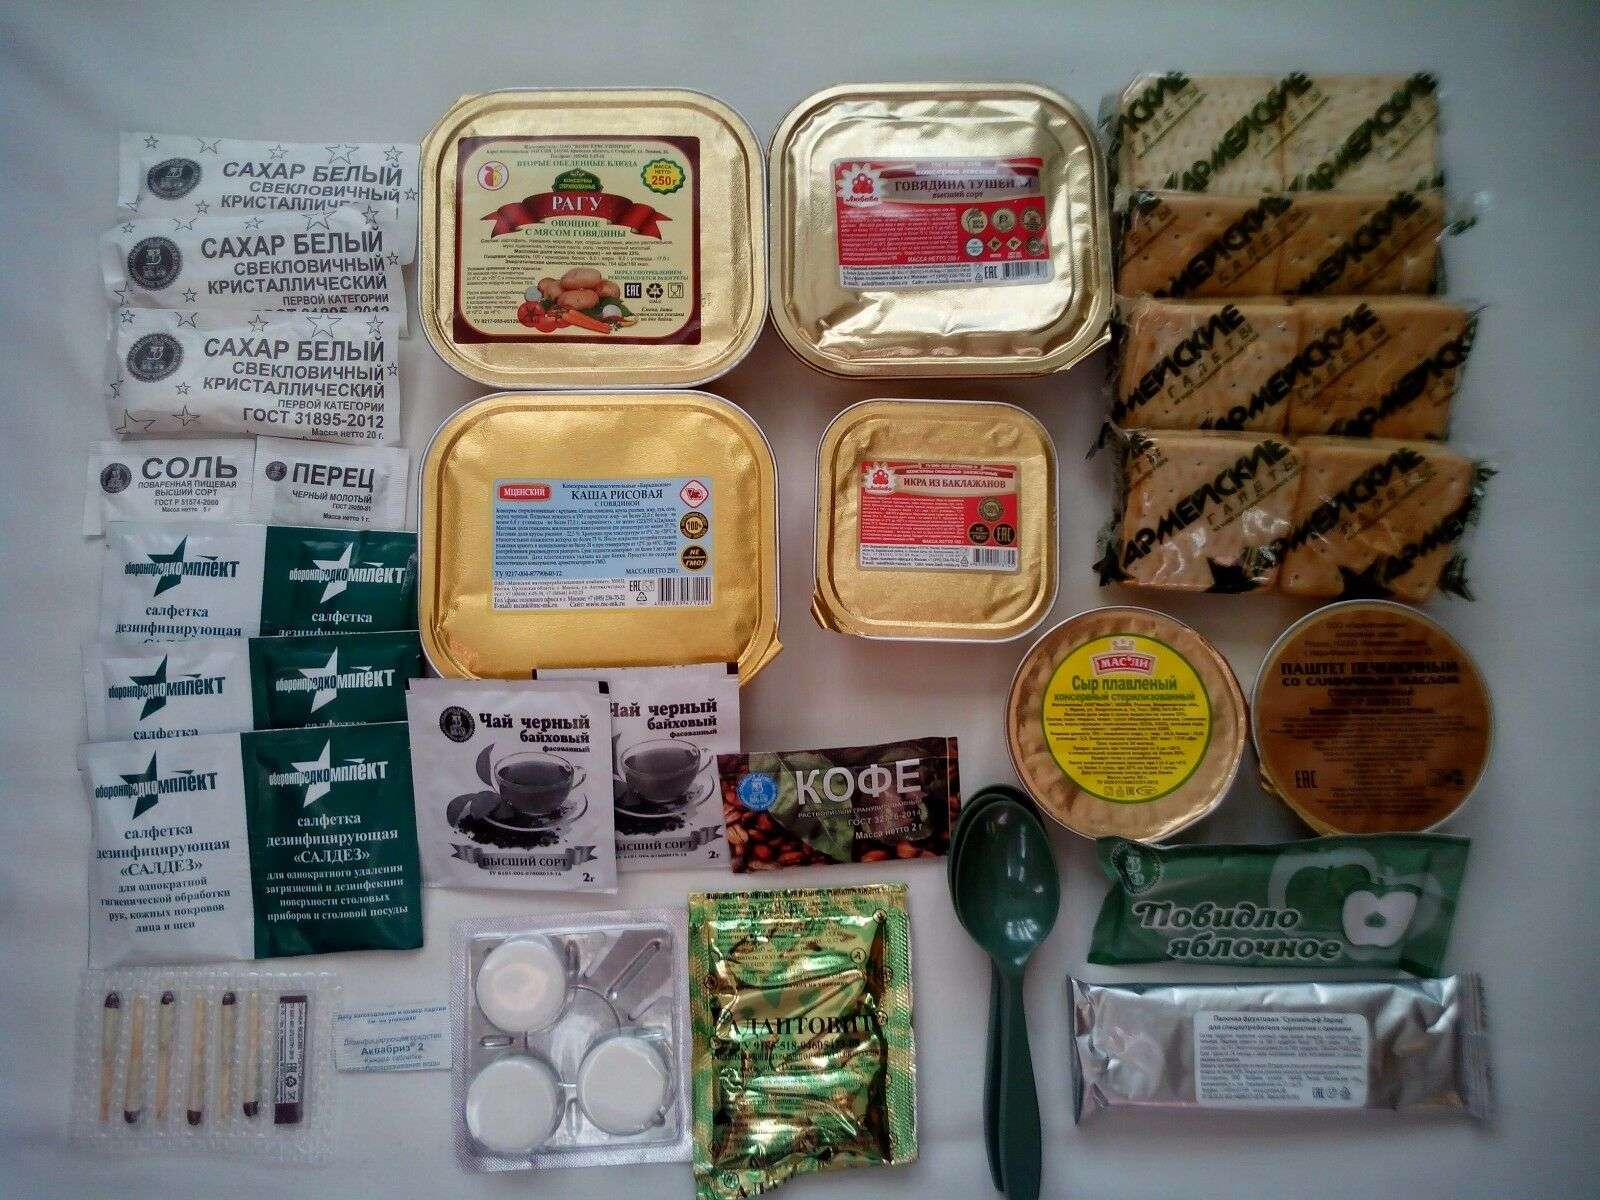 3 military in 1 Russia military 3 army food mre rations 063b2e